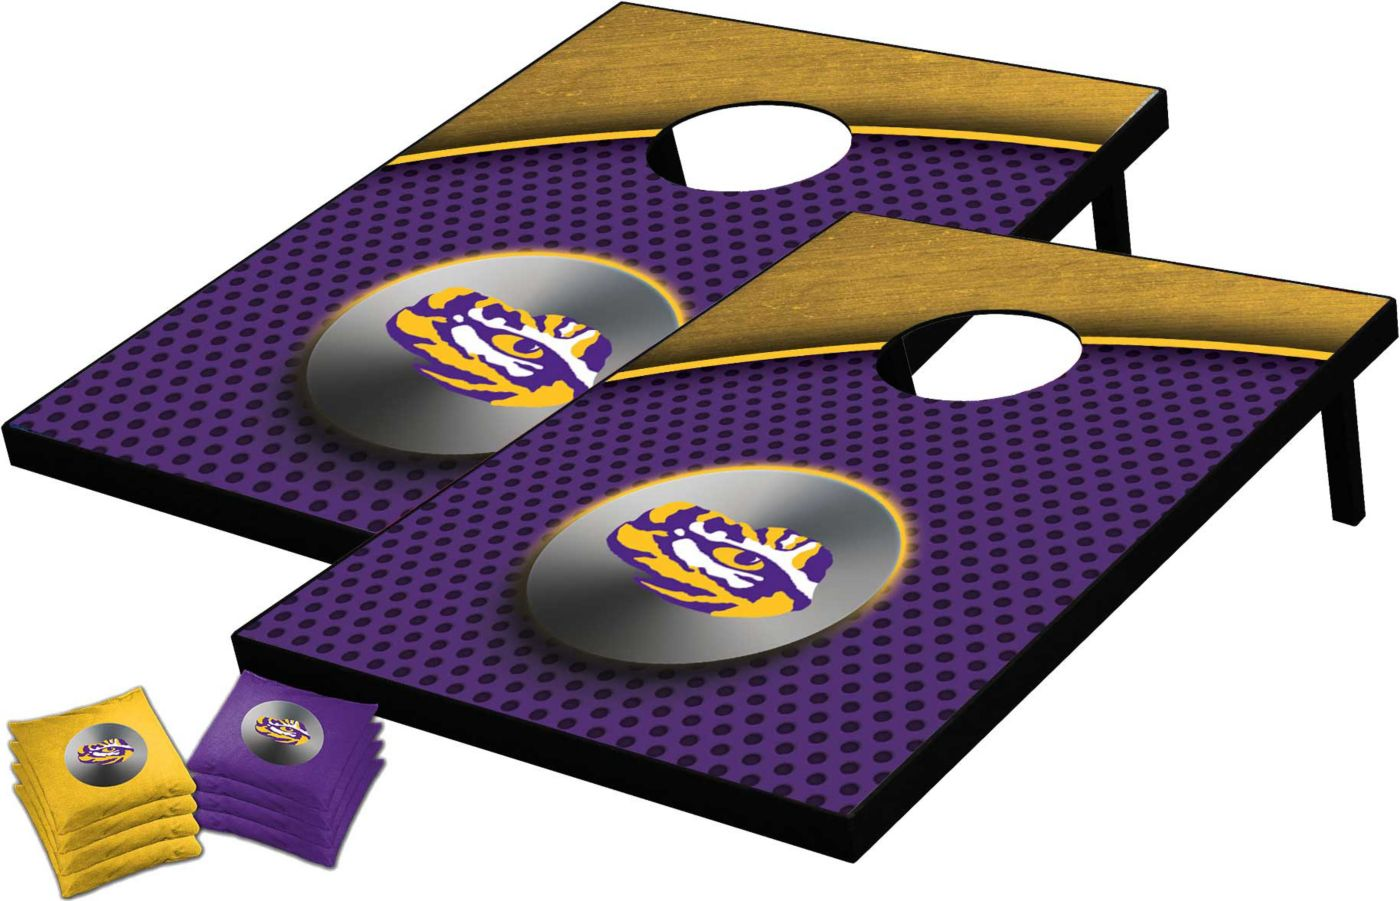 Wild Sports 2' x 3' LSU Tigers Tailgate Toss Cornhole Set